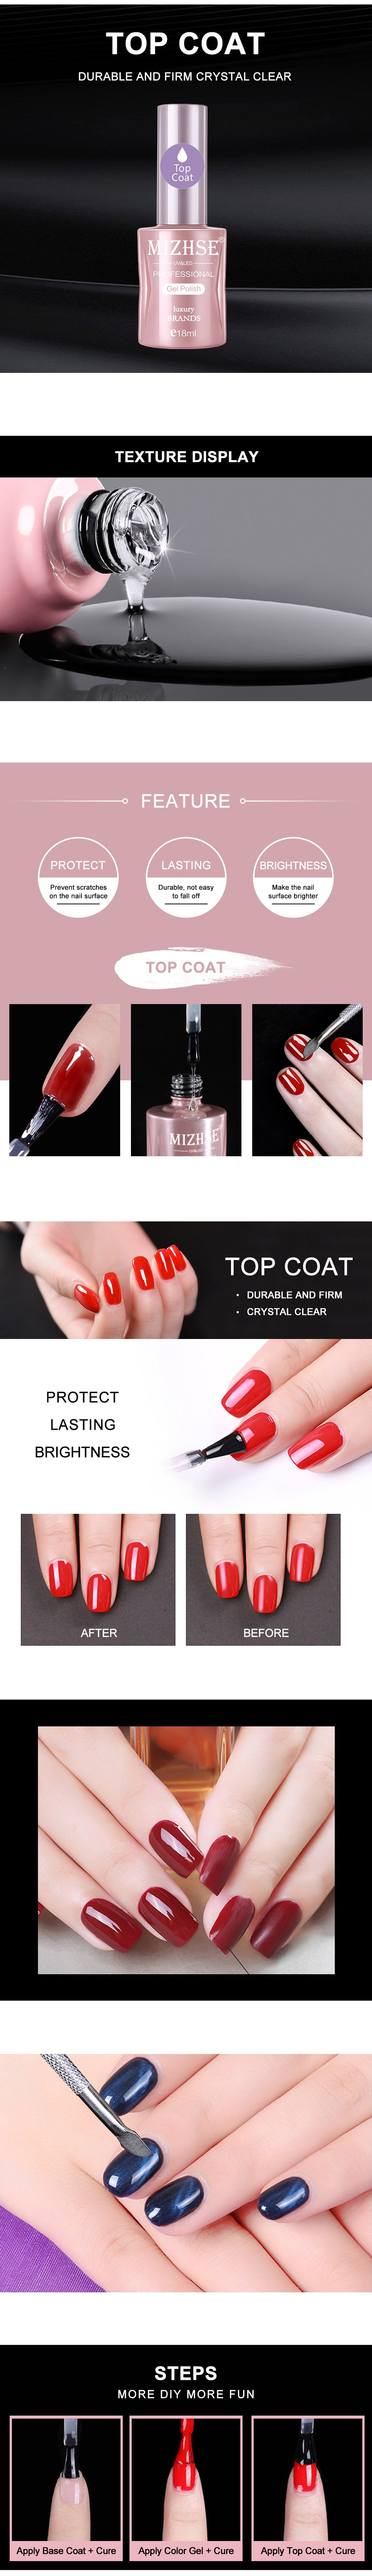 Base coat and top coat for nails